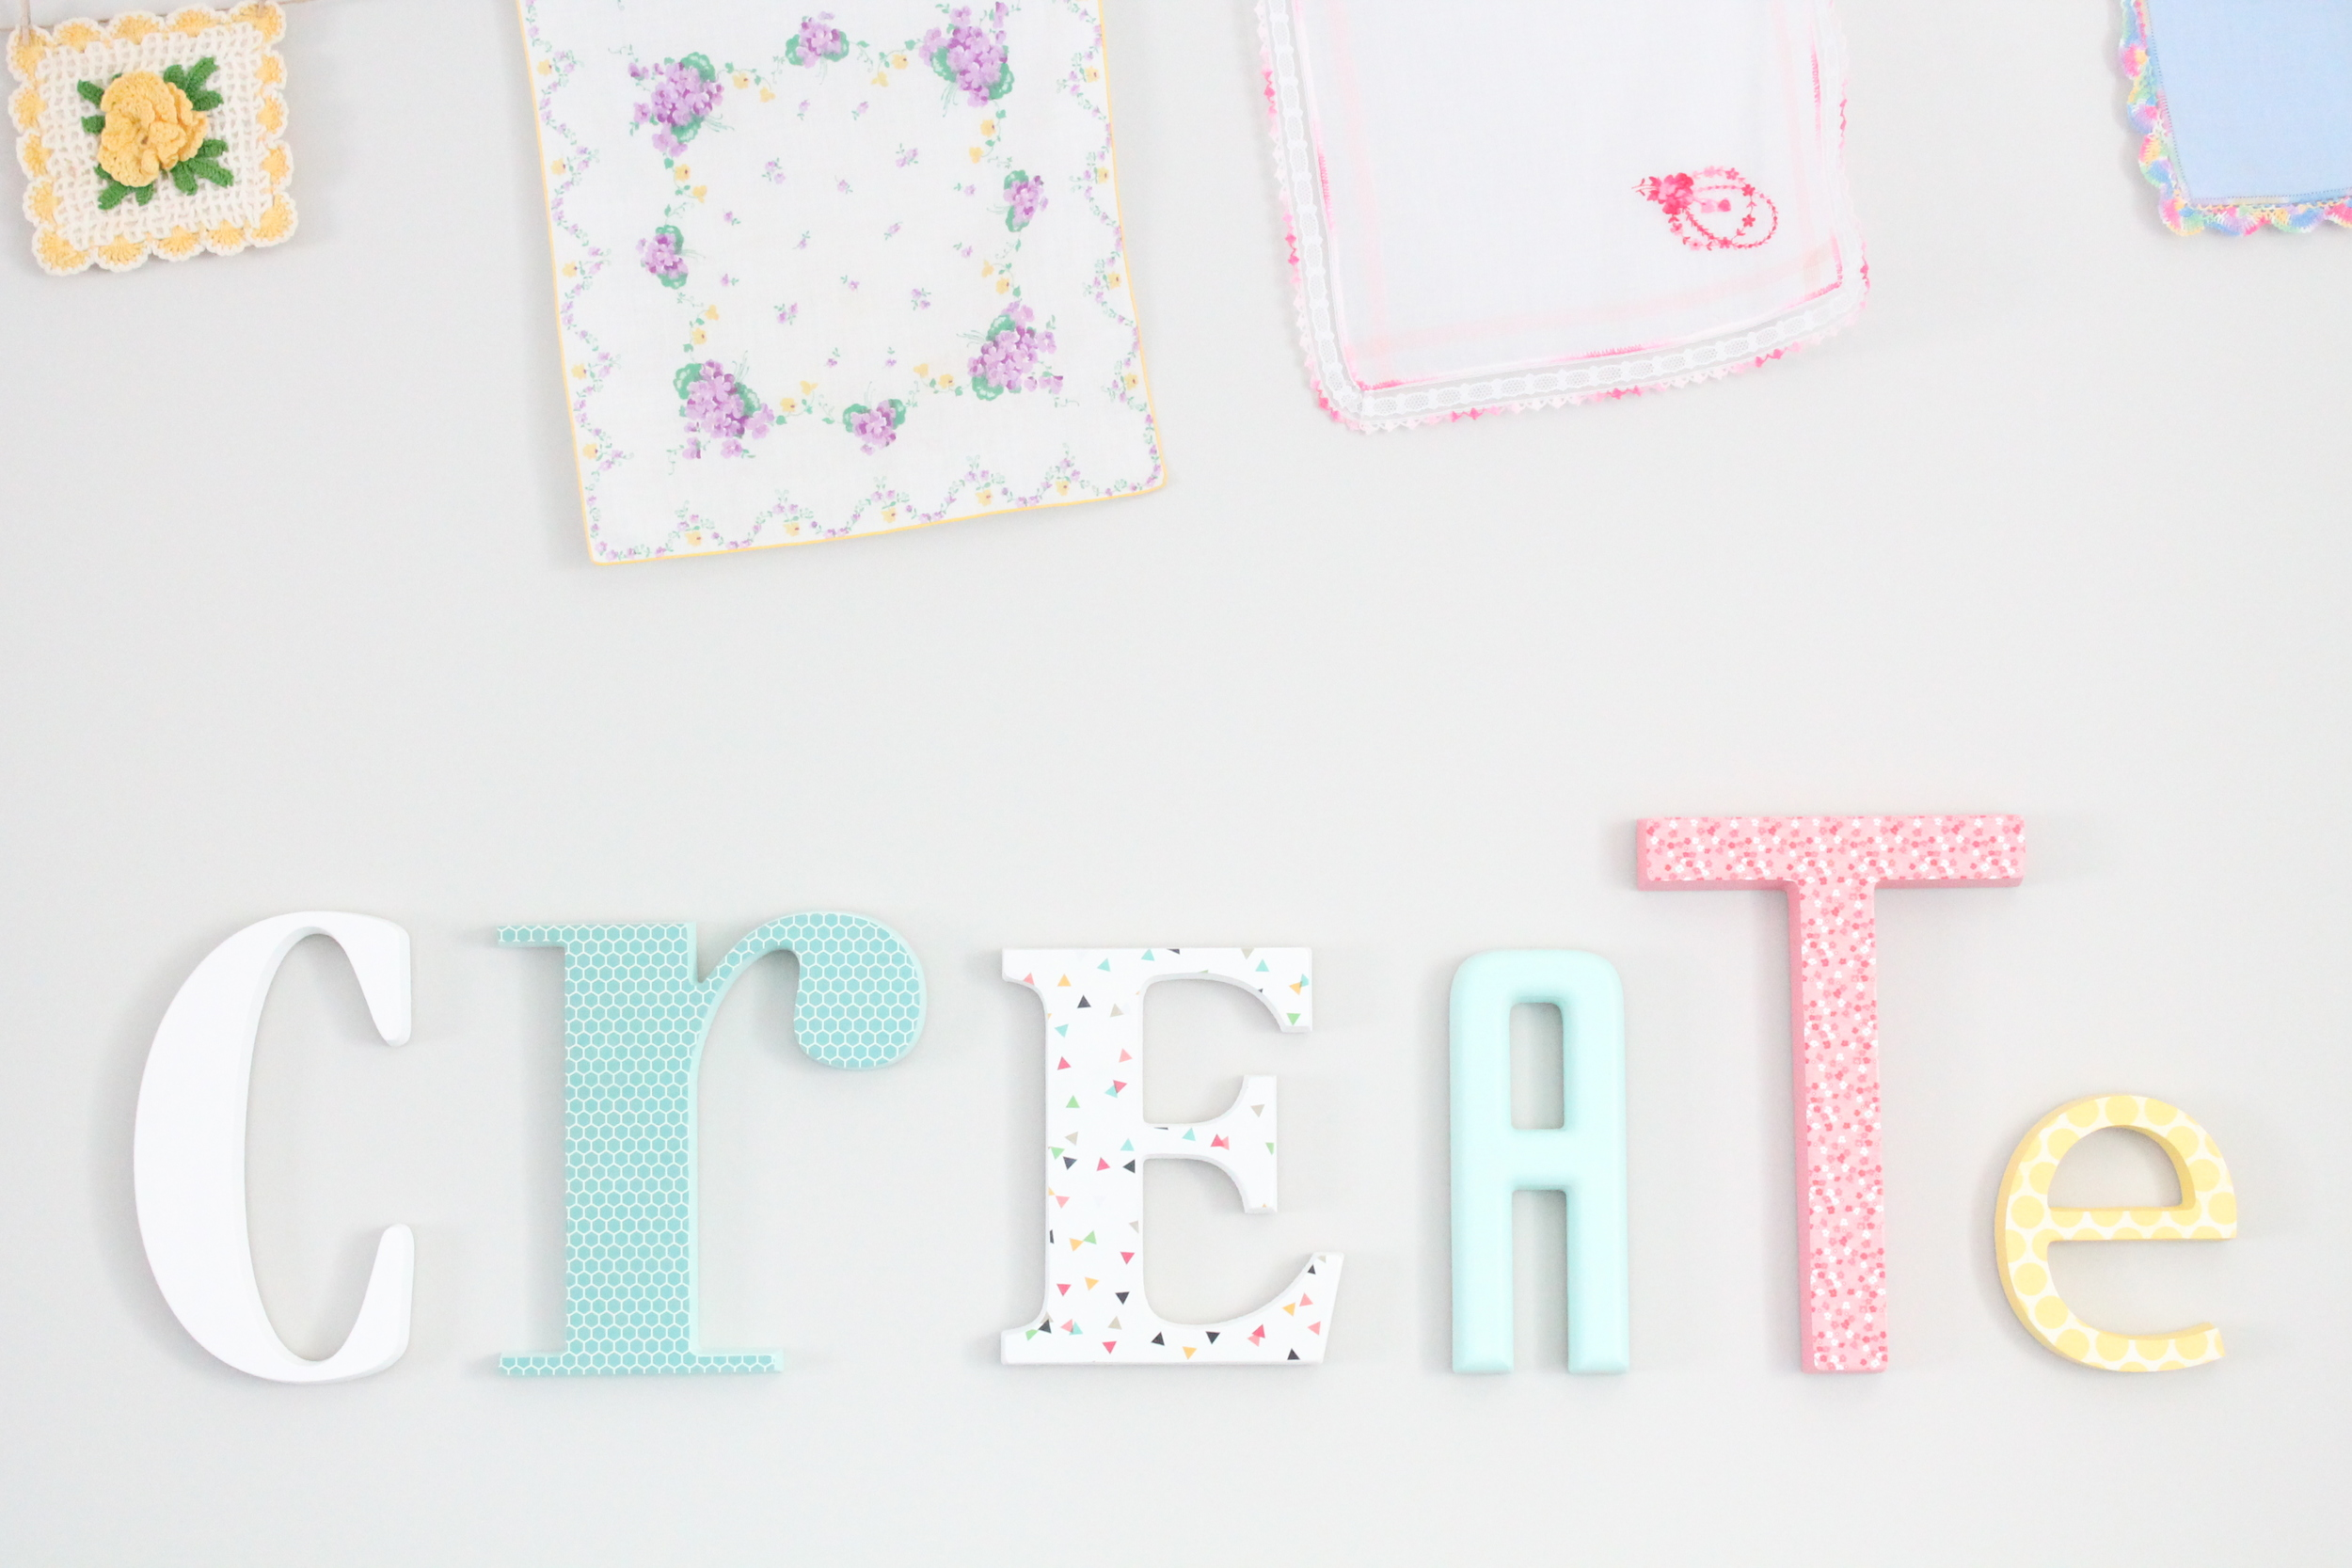 DIY letters for the family craft room. Painted each letter a different color and covered some with scrapbook paper.